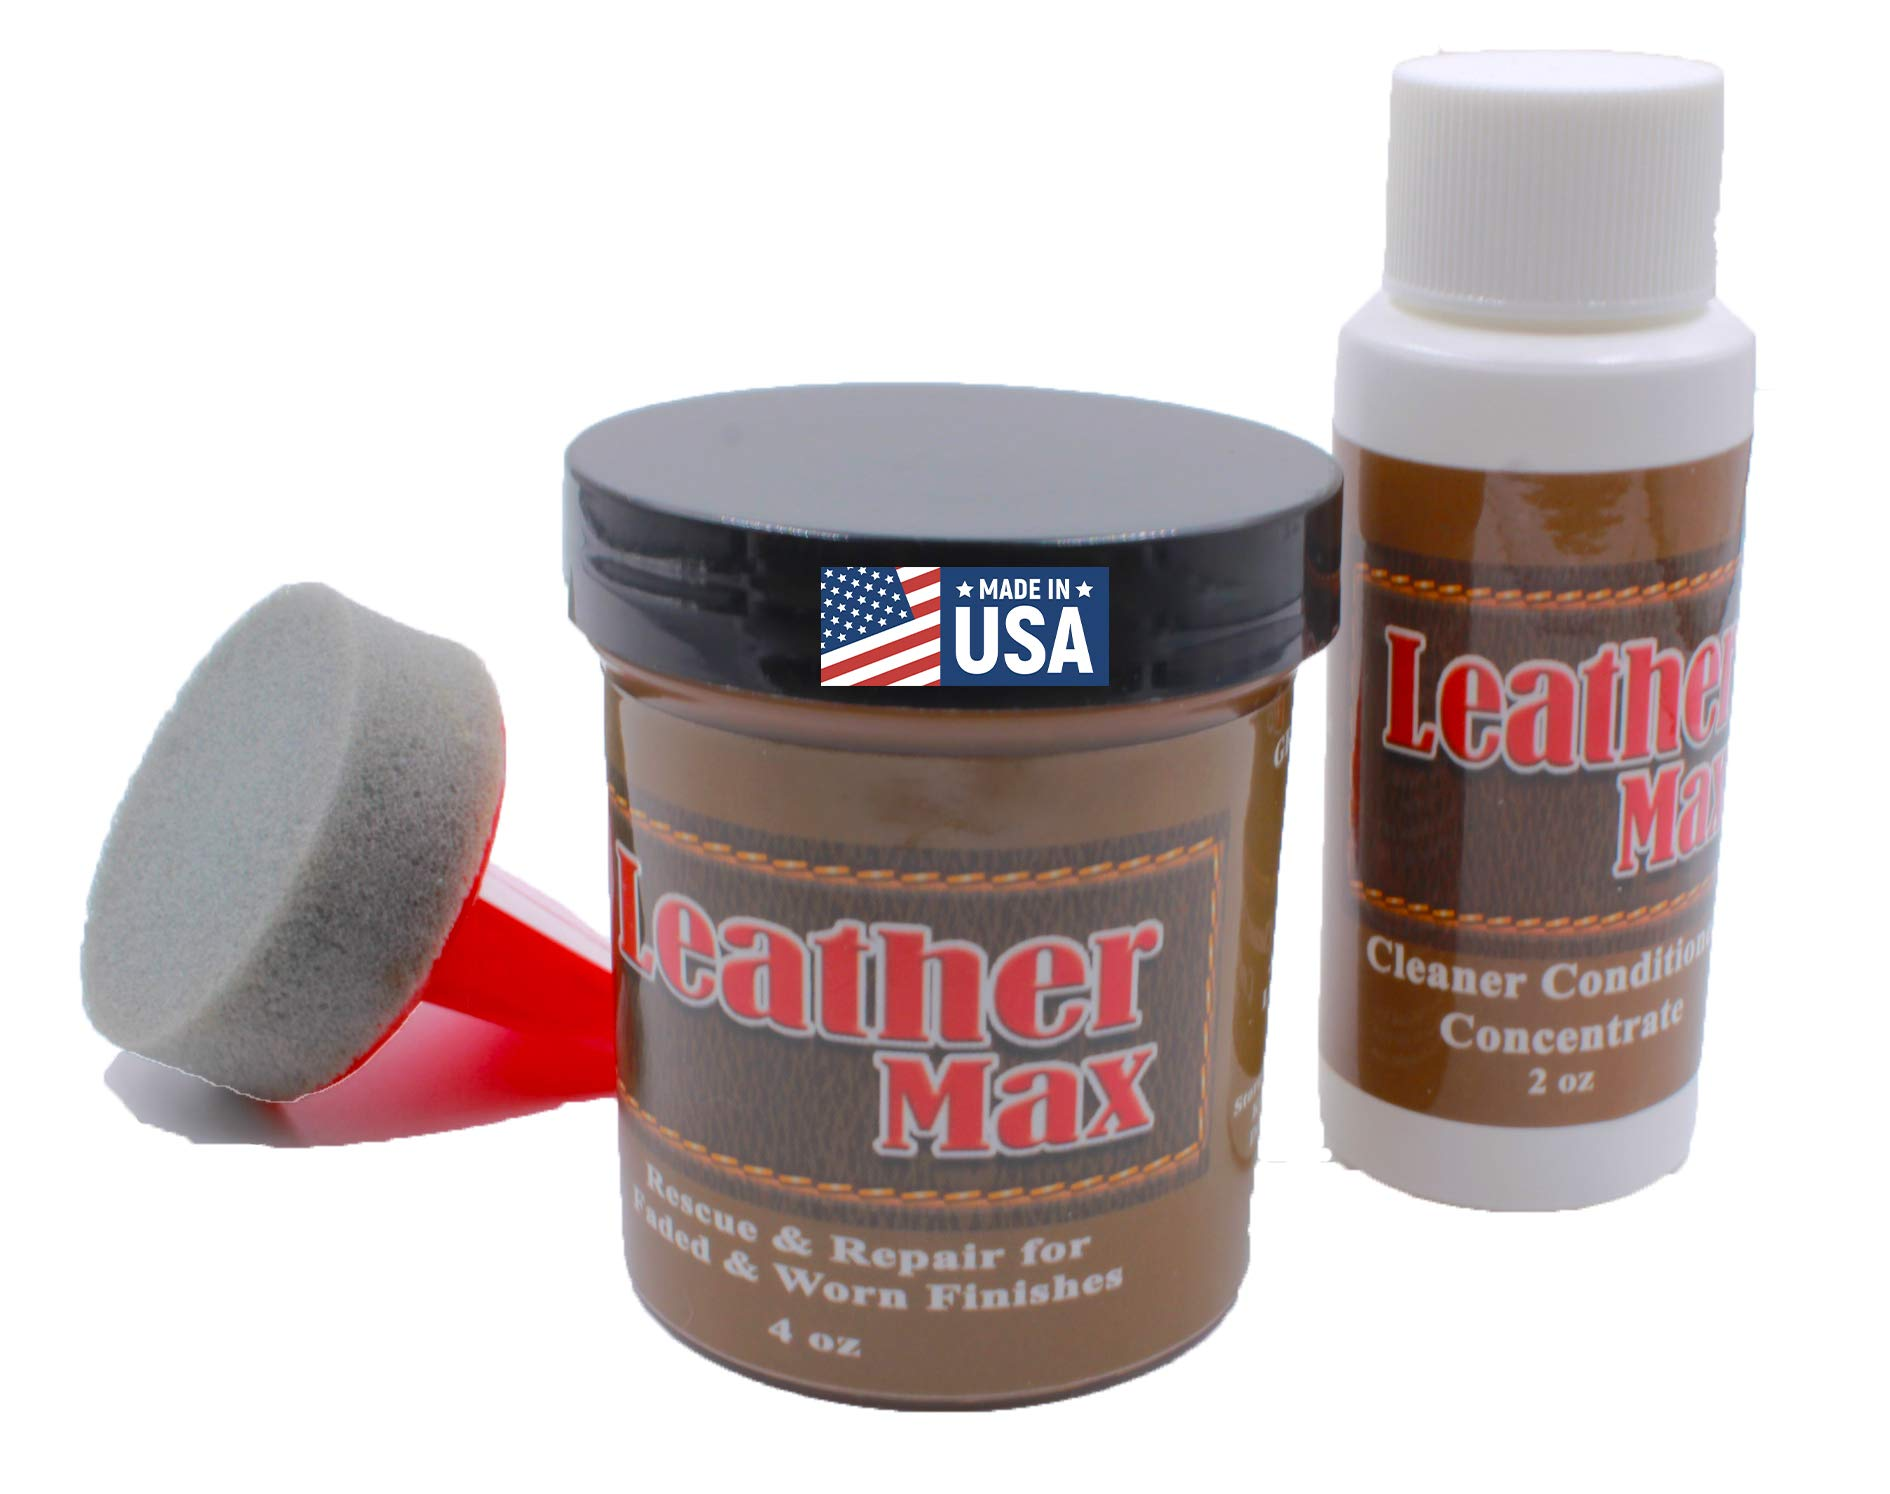 Furniture Leather Max Refinish and Restorer Kit / 4 Oz Restorer / 2 Oz Conditioner / 1 Sponge (Leather Repair) (Vinyl Repair) (Dark Brown) by Leather Furniture Refinish and Repair